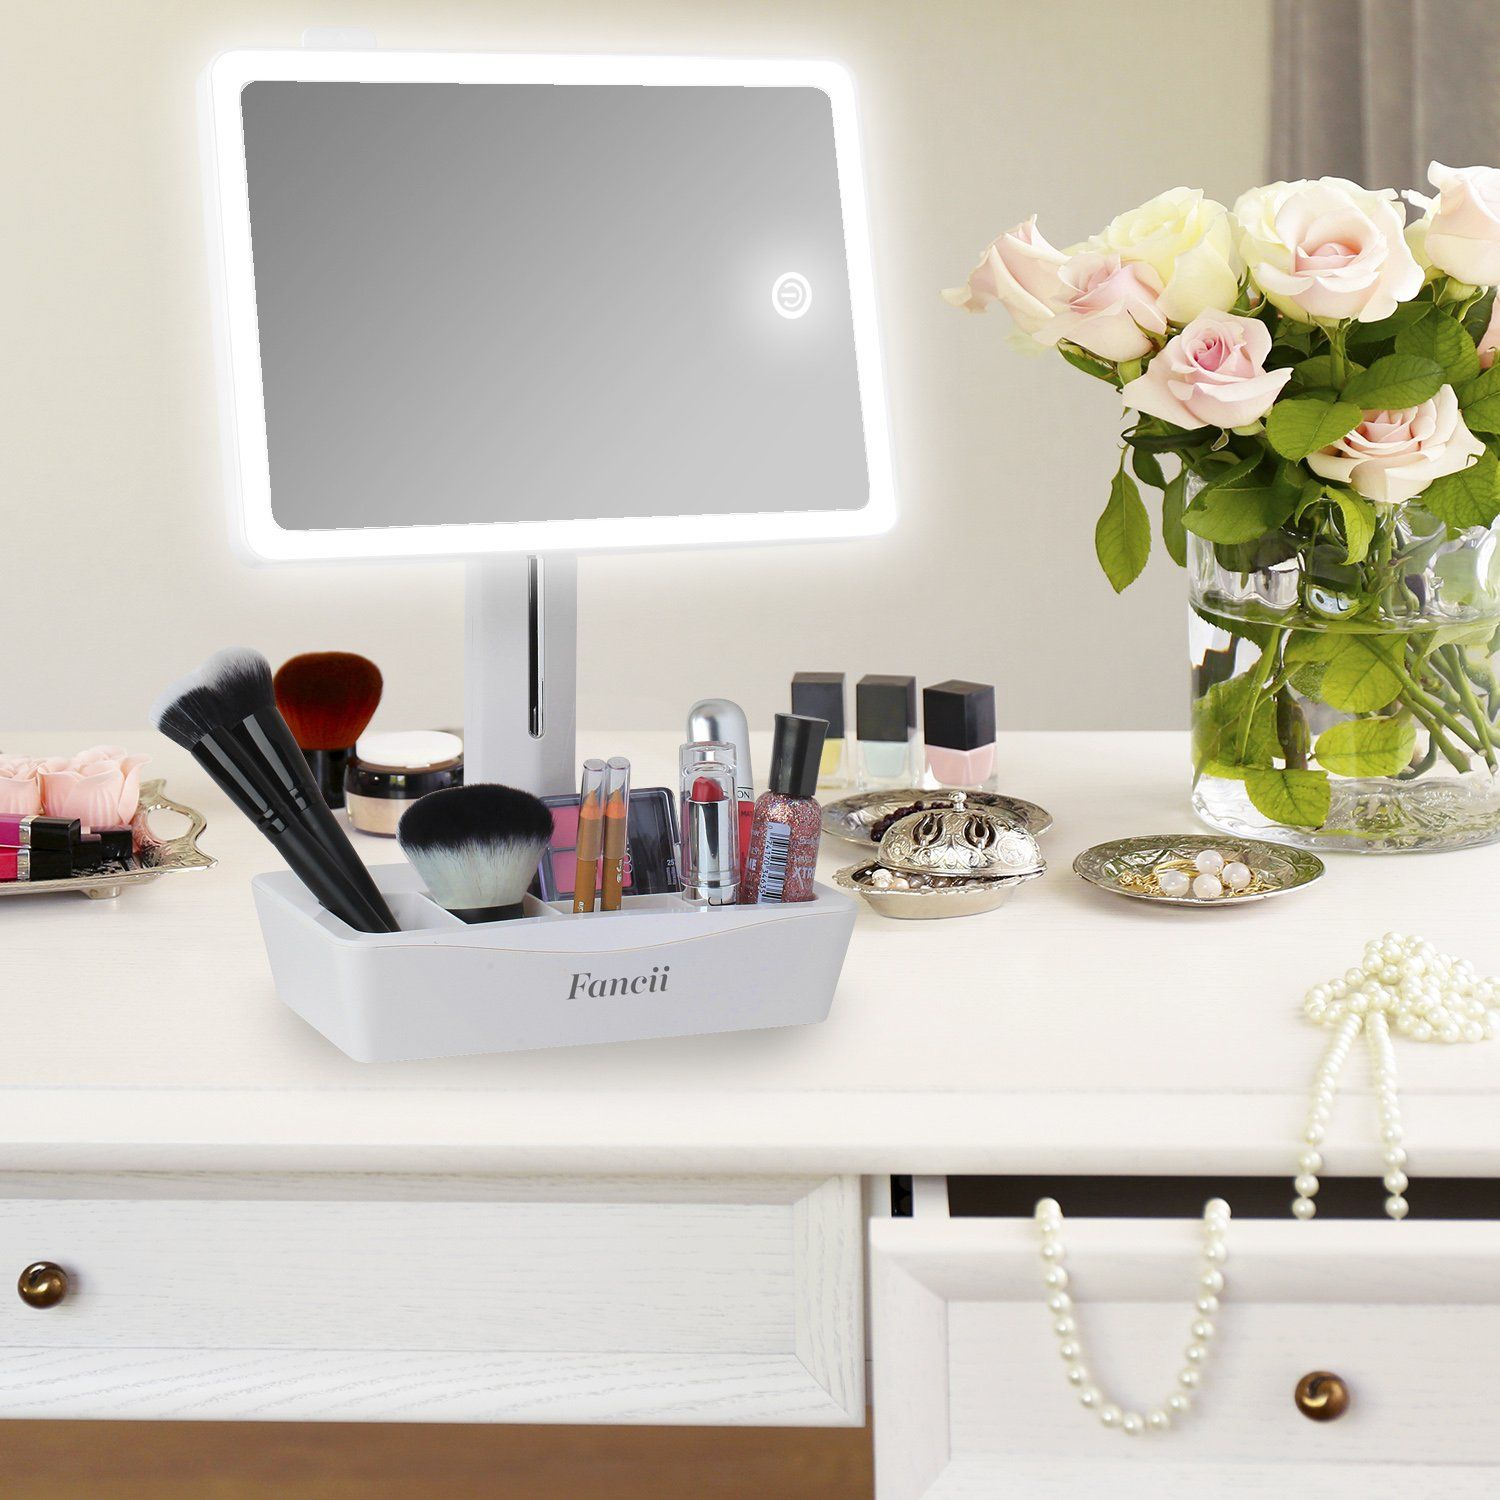 Fancii Led Lighted Large Vanity Makeup Mirror With 10x Magnifying Mirror Dimmable Natural Light Touch Screen Dua Magnifying Mirror Makeup Vanity Makeup Mirror